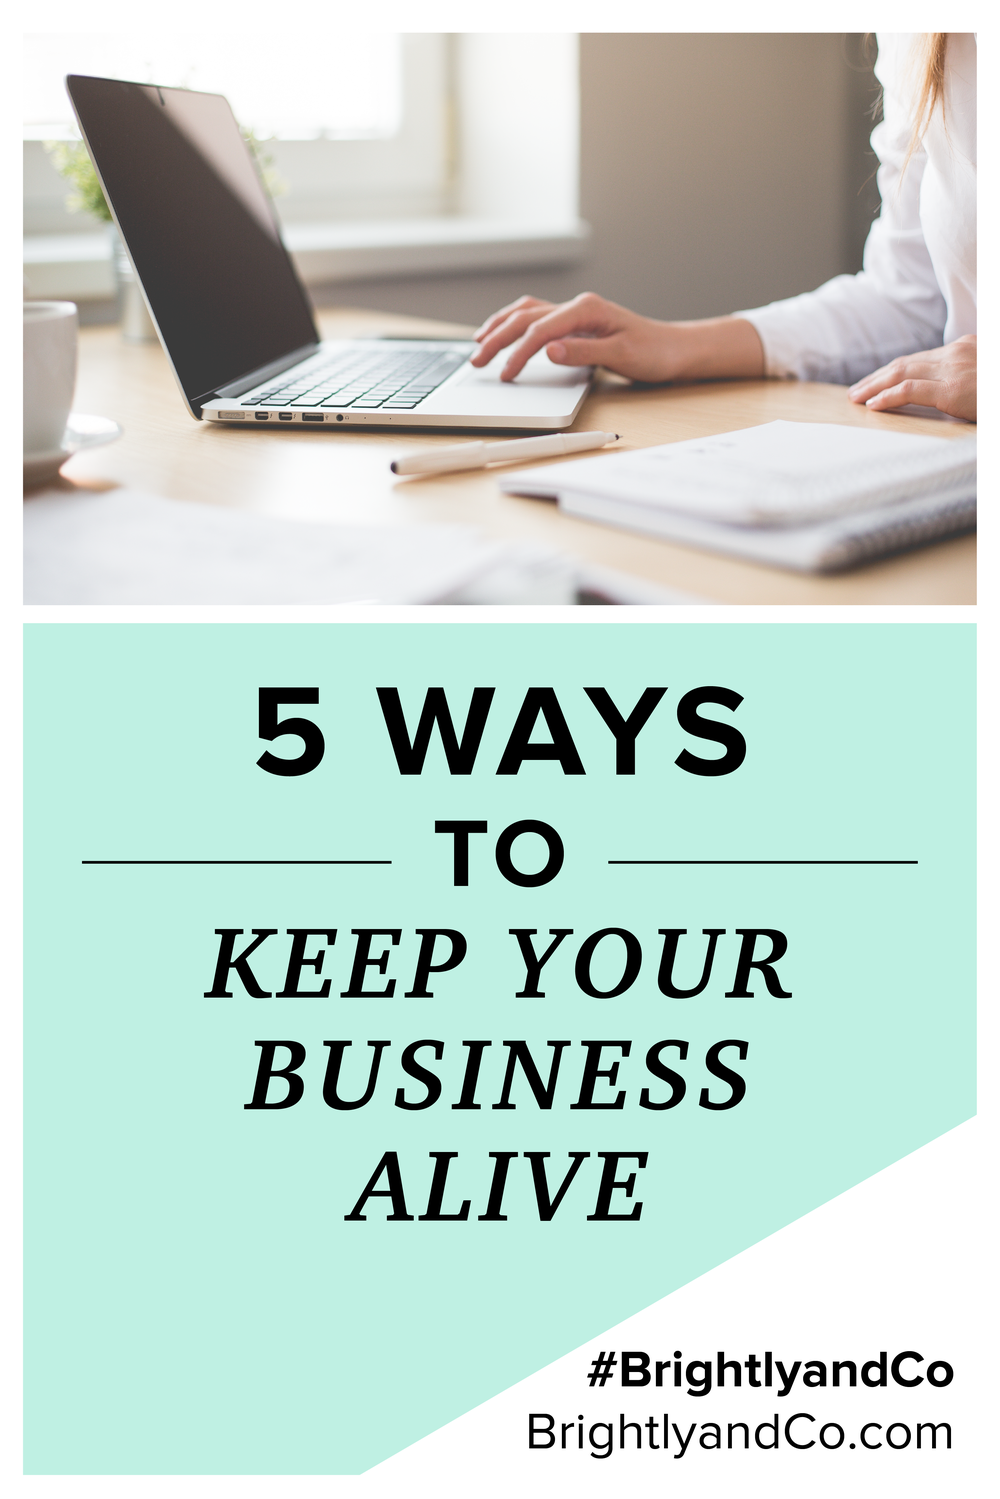 Keep Your Life On Track All Year Long: Brightly & Co.5 Ways To Keep Your Business Alive